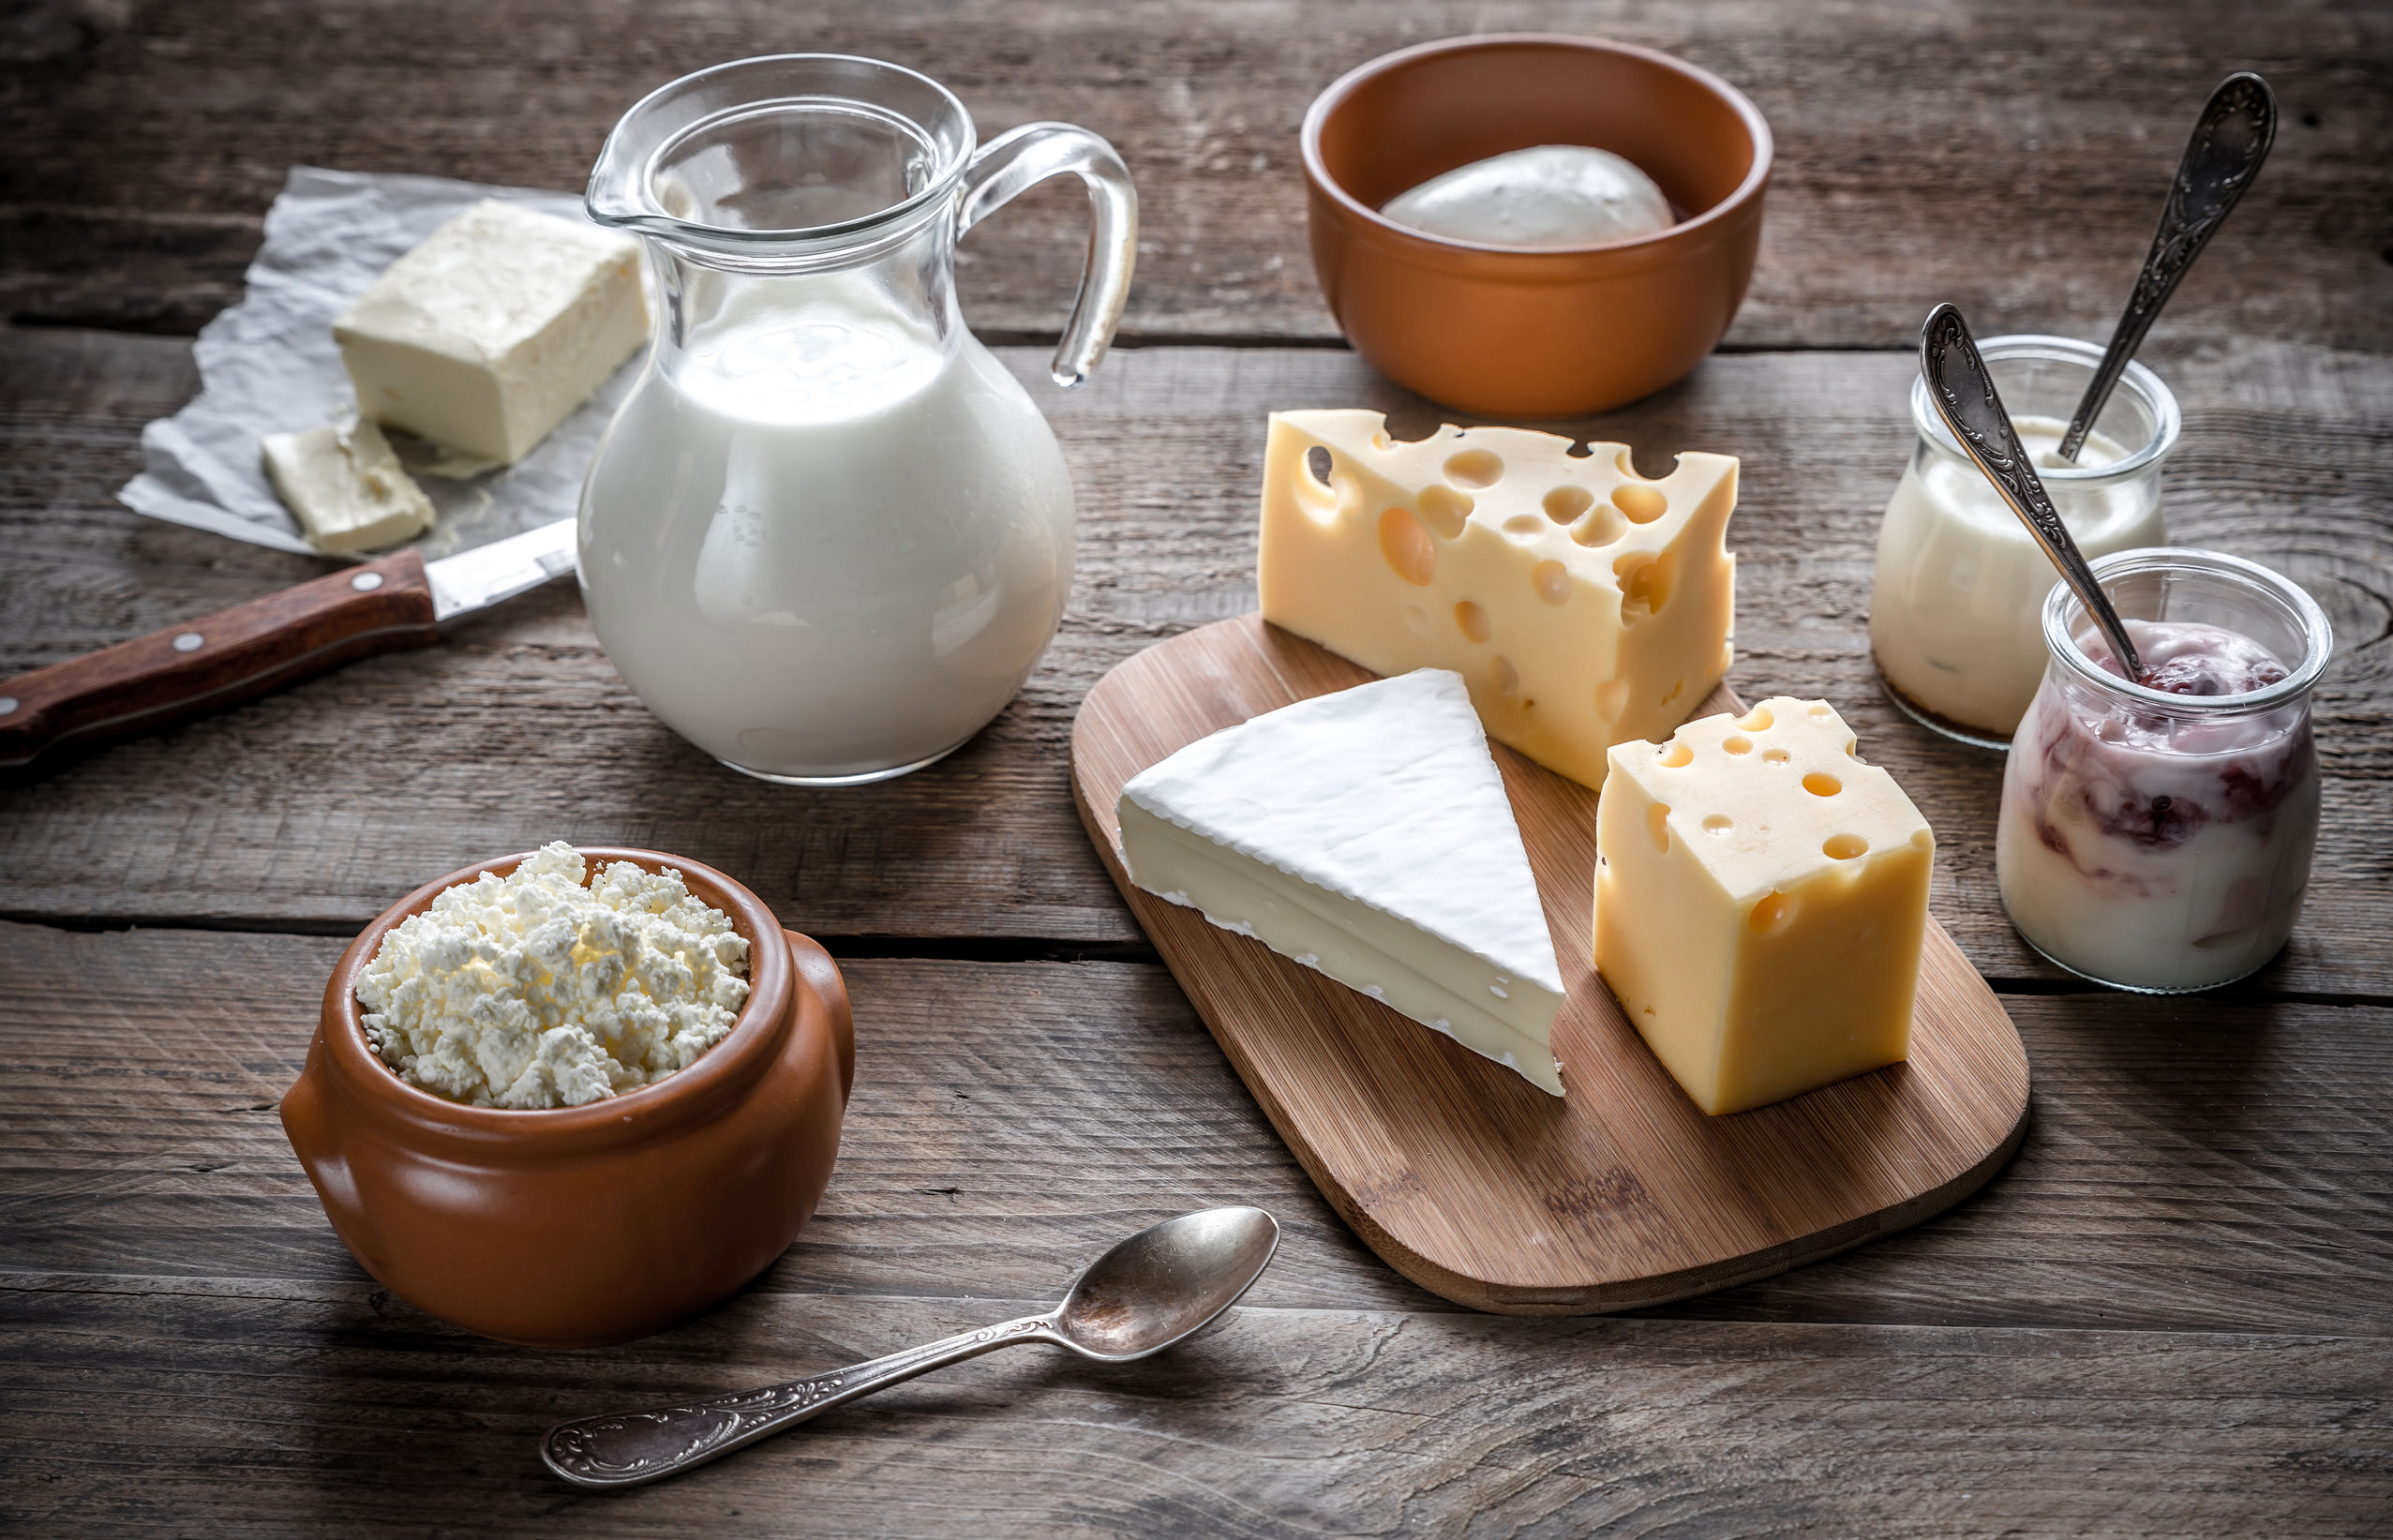 Scientists investigating dairy's influence on mental and gut health